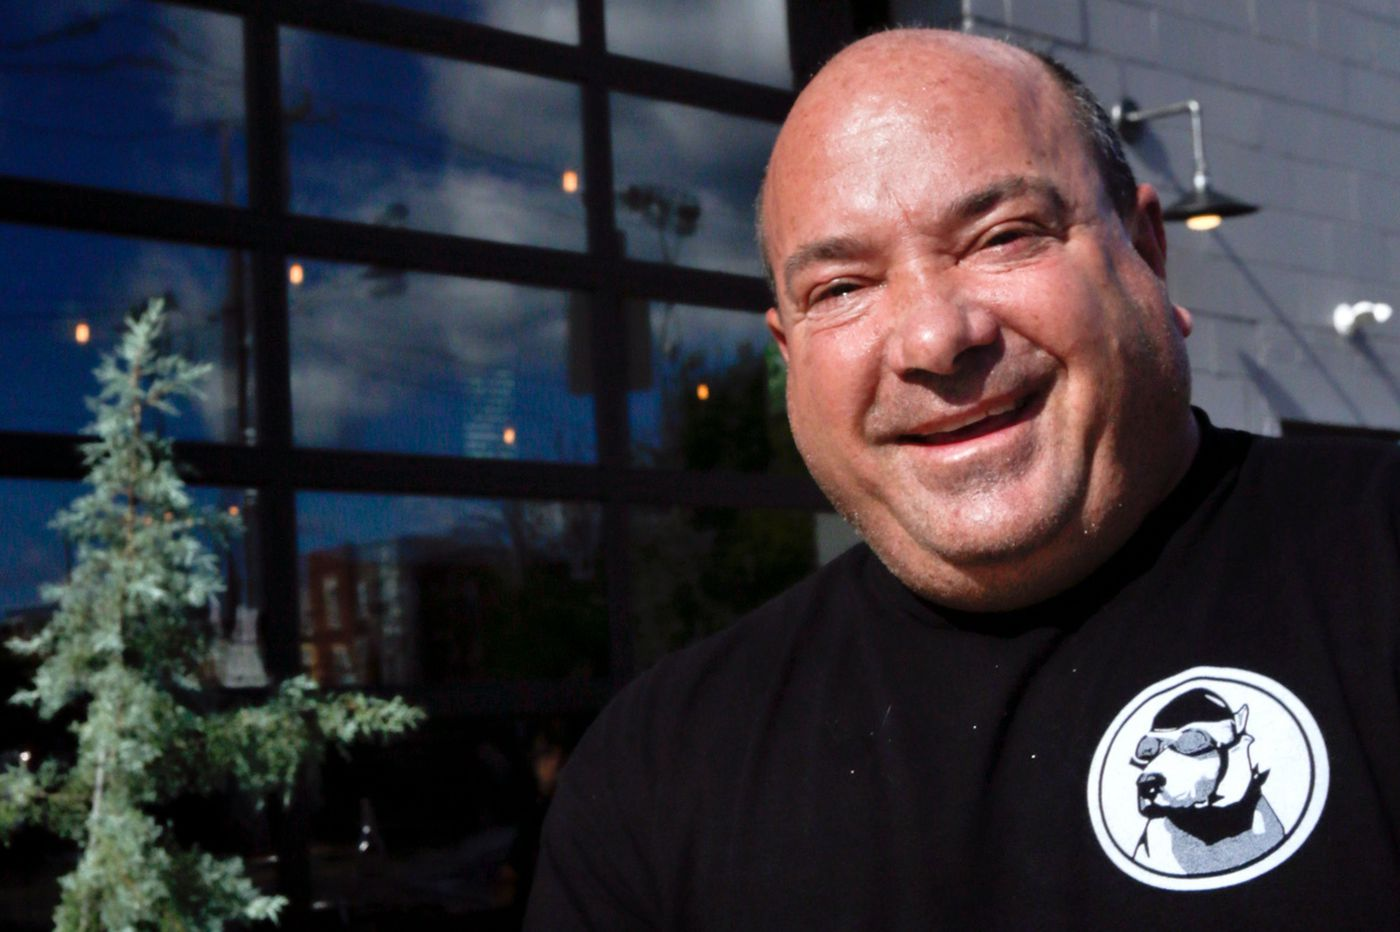 Reputed mob enforcer, restaurateur Narducci pleads guilty in loan-sharking case, asks for prison